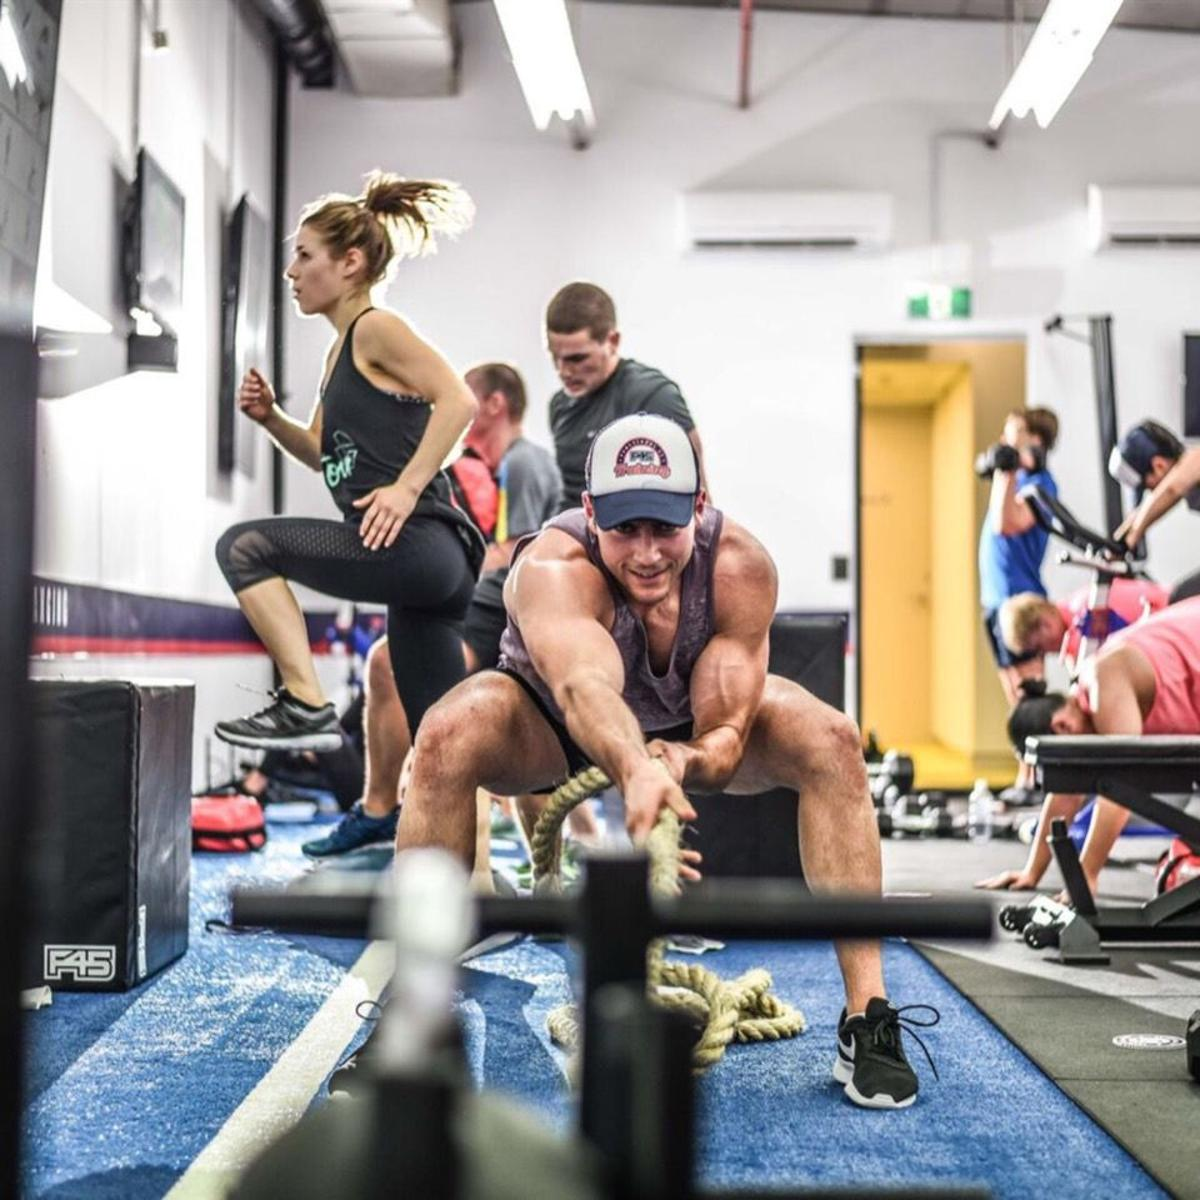 Tri Lakes Business Buzz New Fitness Studio In Northern Colorado Springs Aims To Change Bodies And Lives Thetribune Gazette Com